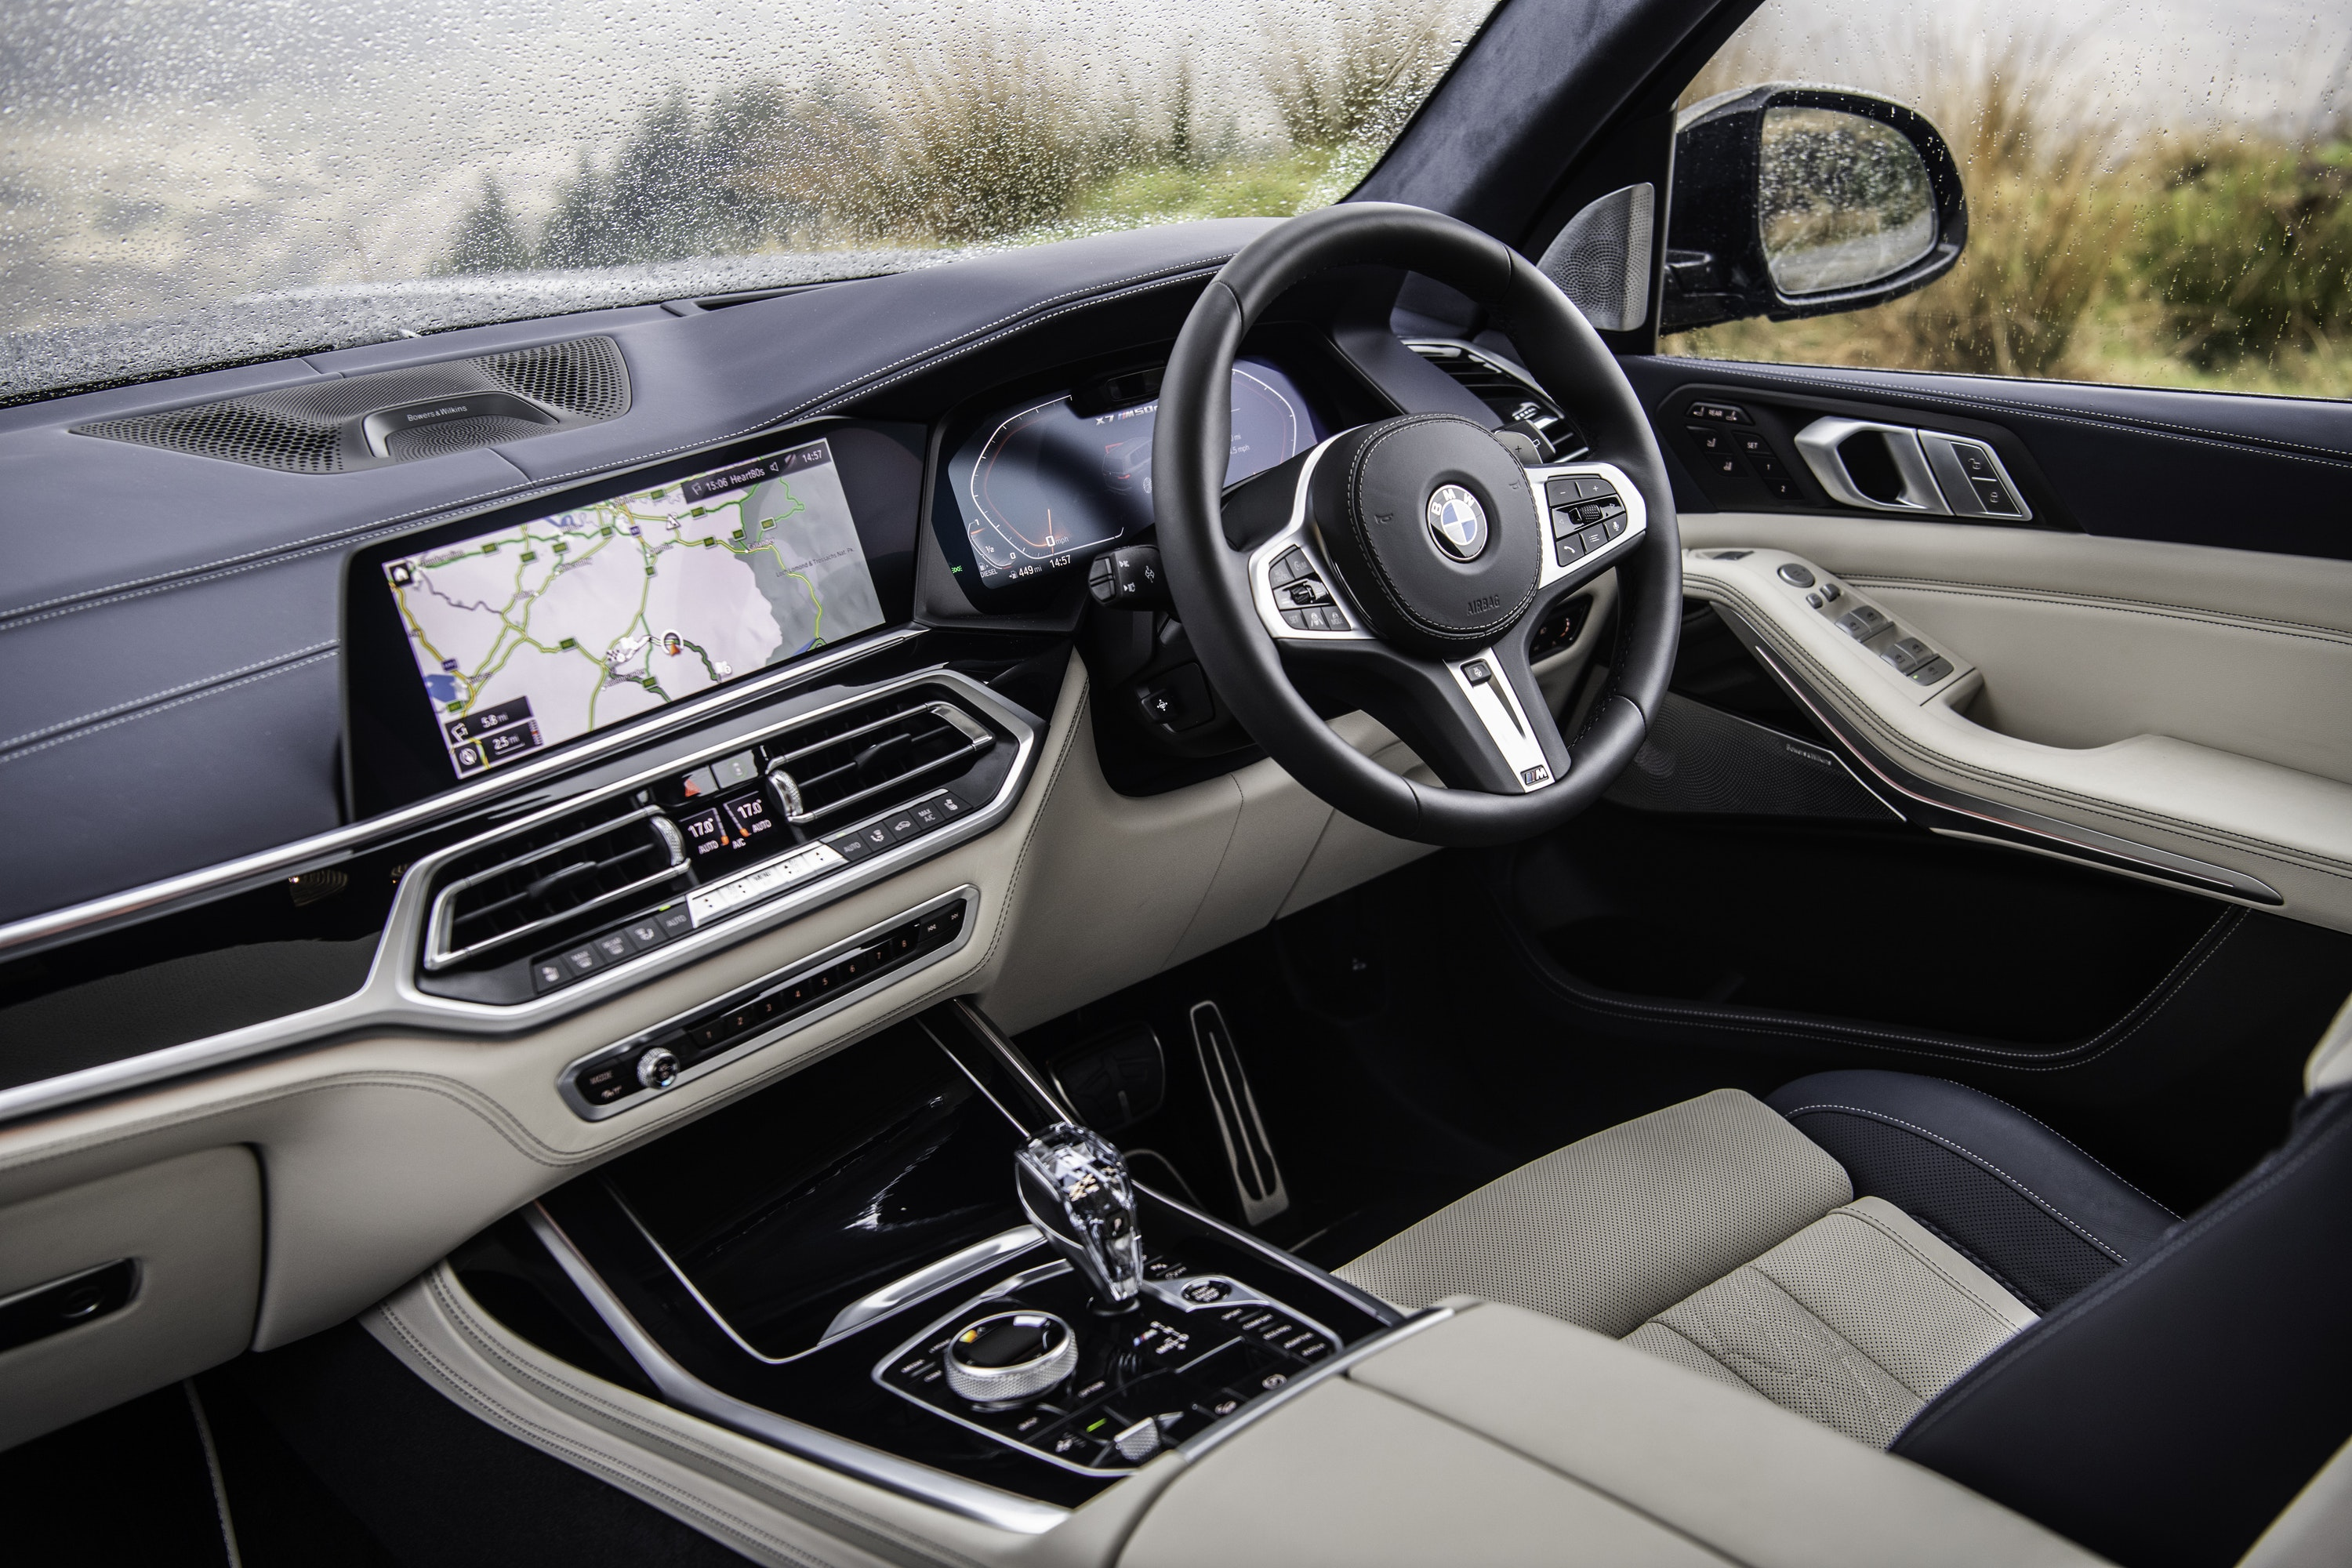 interior of the BMW X7